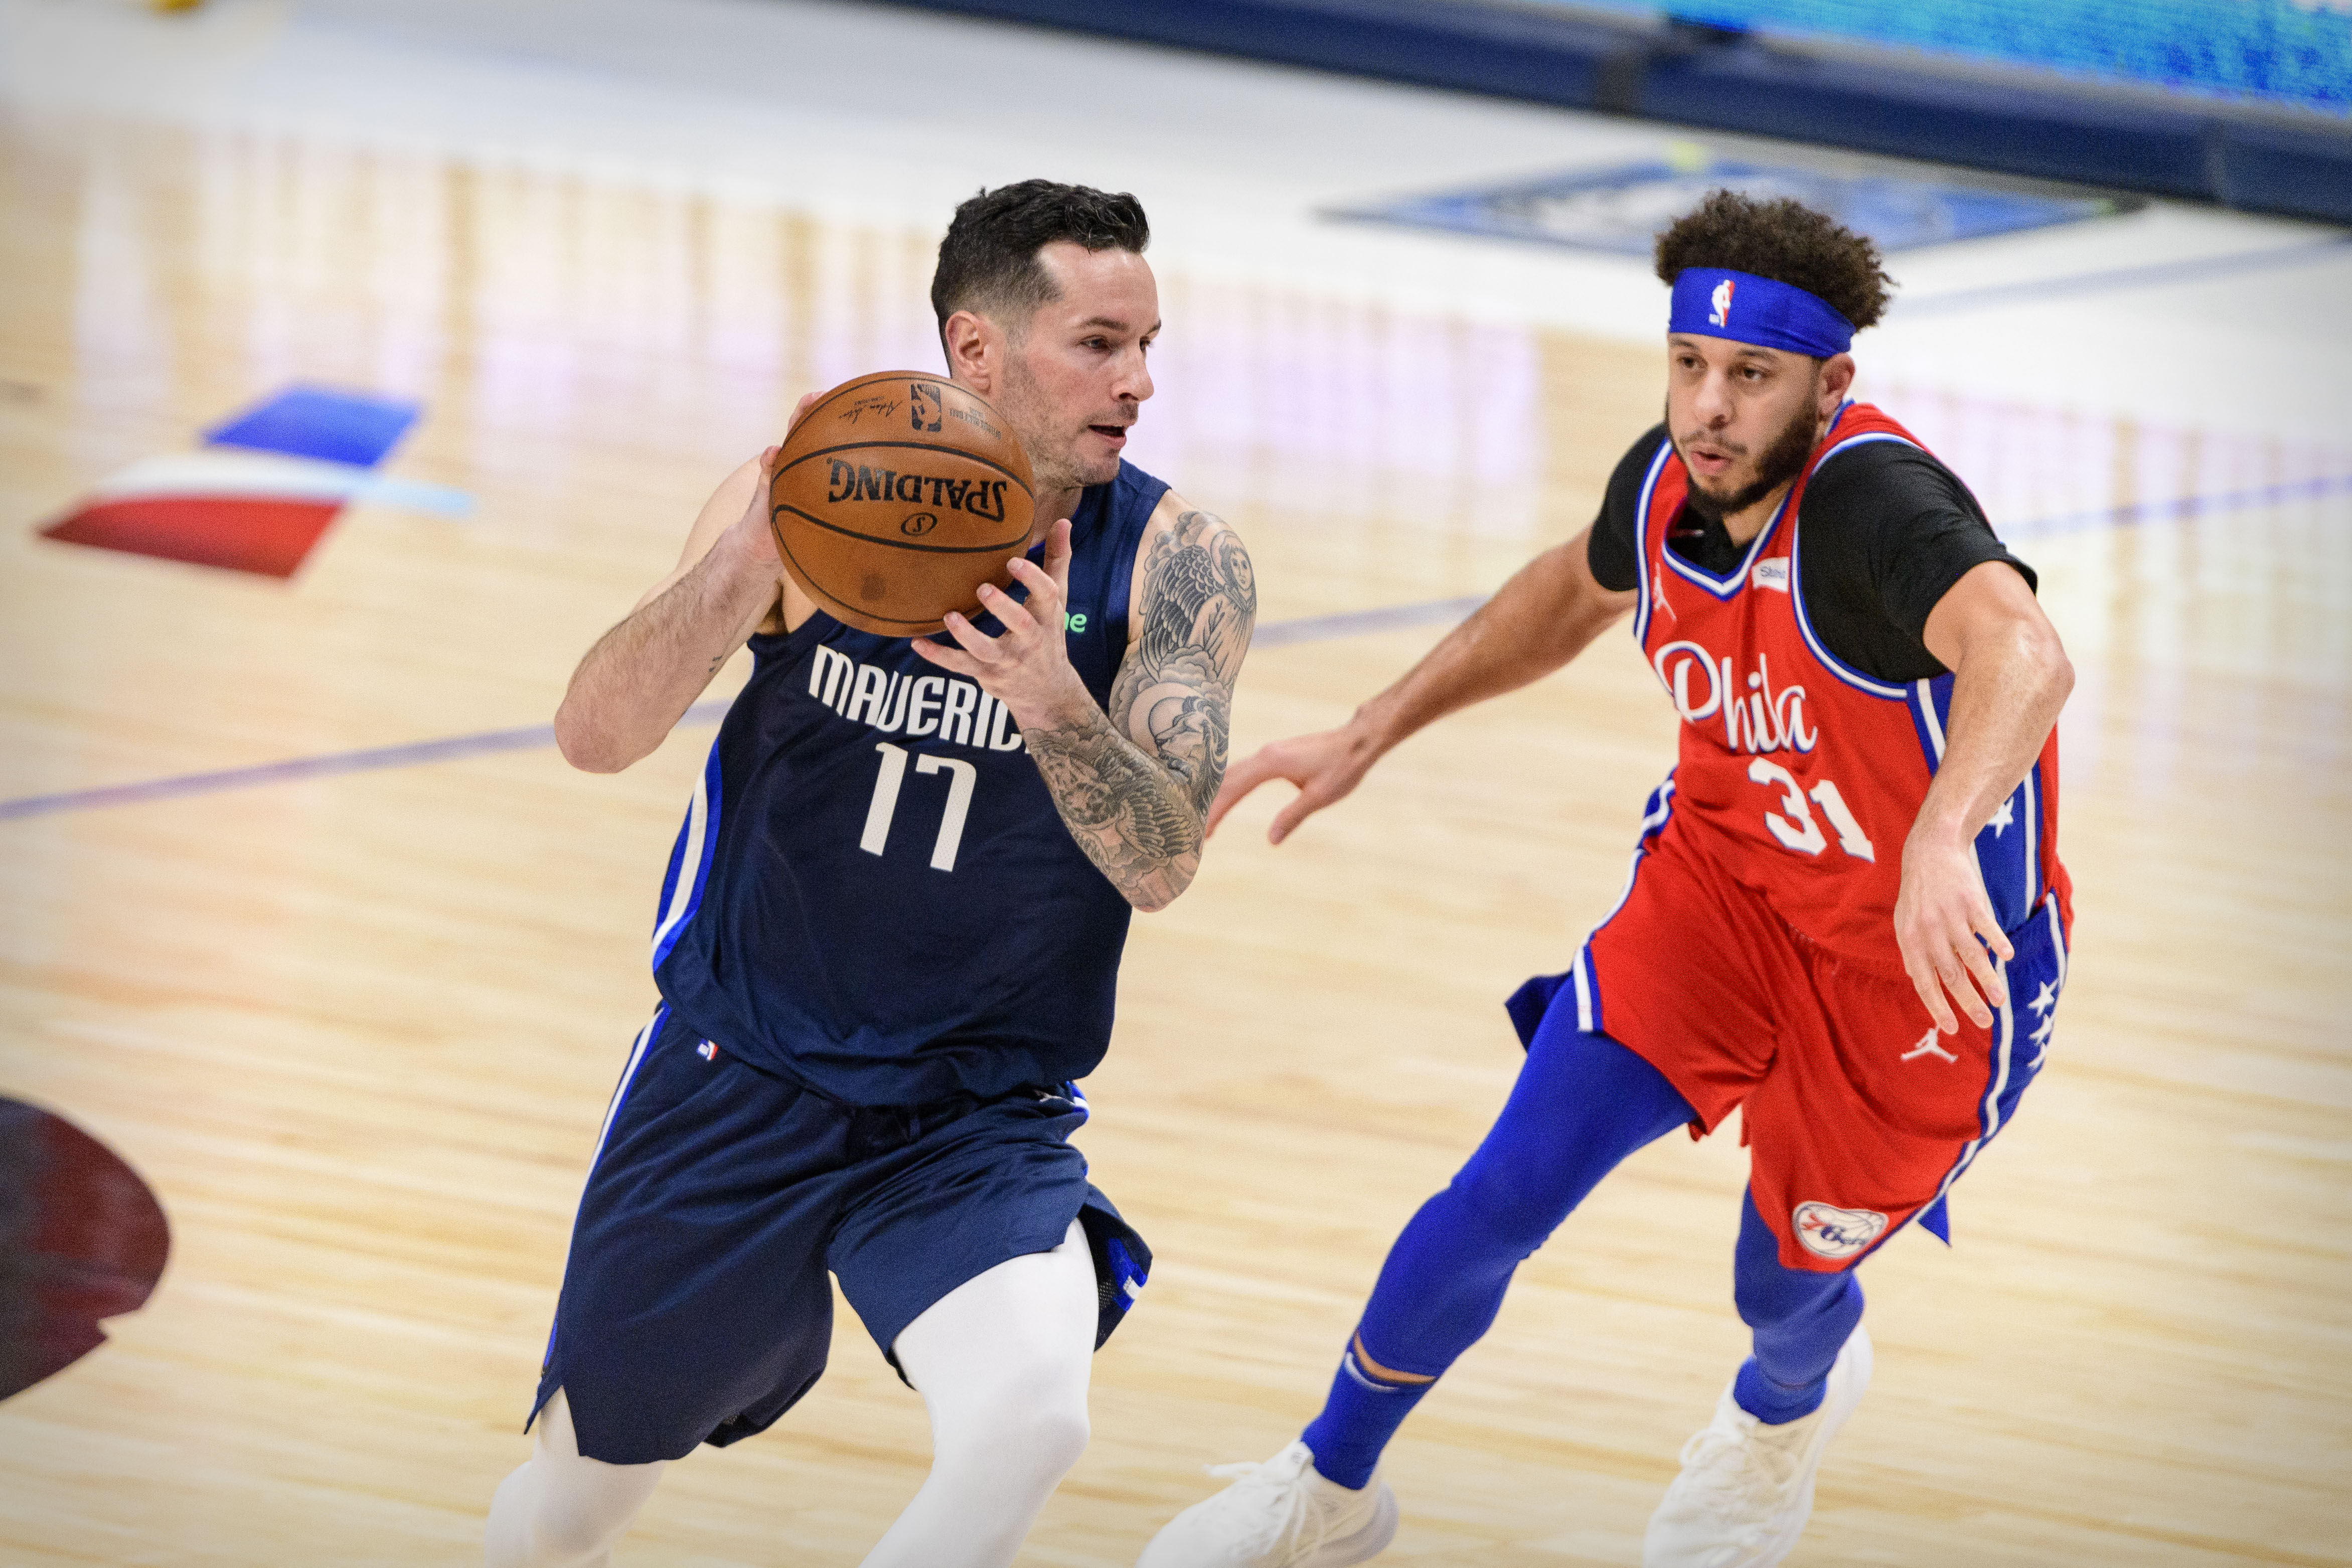 Apr 12, 2021; Dallas, Texas, USA; Dallas Mavericks guard JJ Redick (17) and Philadelphia 76ers guard Seth Curry (31) in action during the game between the Dallas Mavericks and the Philadelphia 76ers at the American Airlines Center.